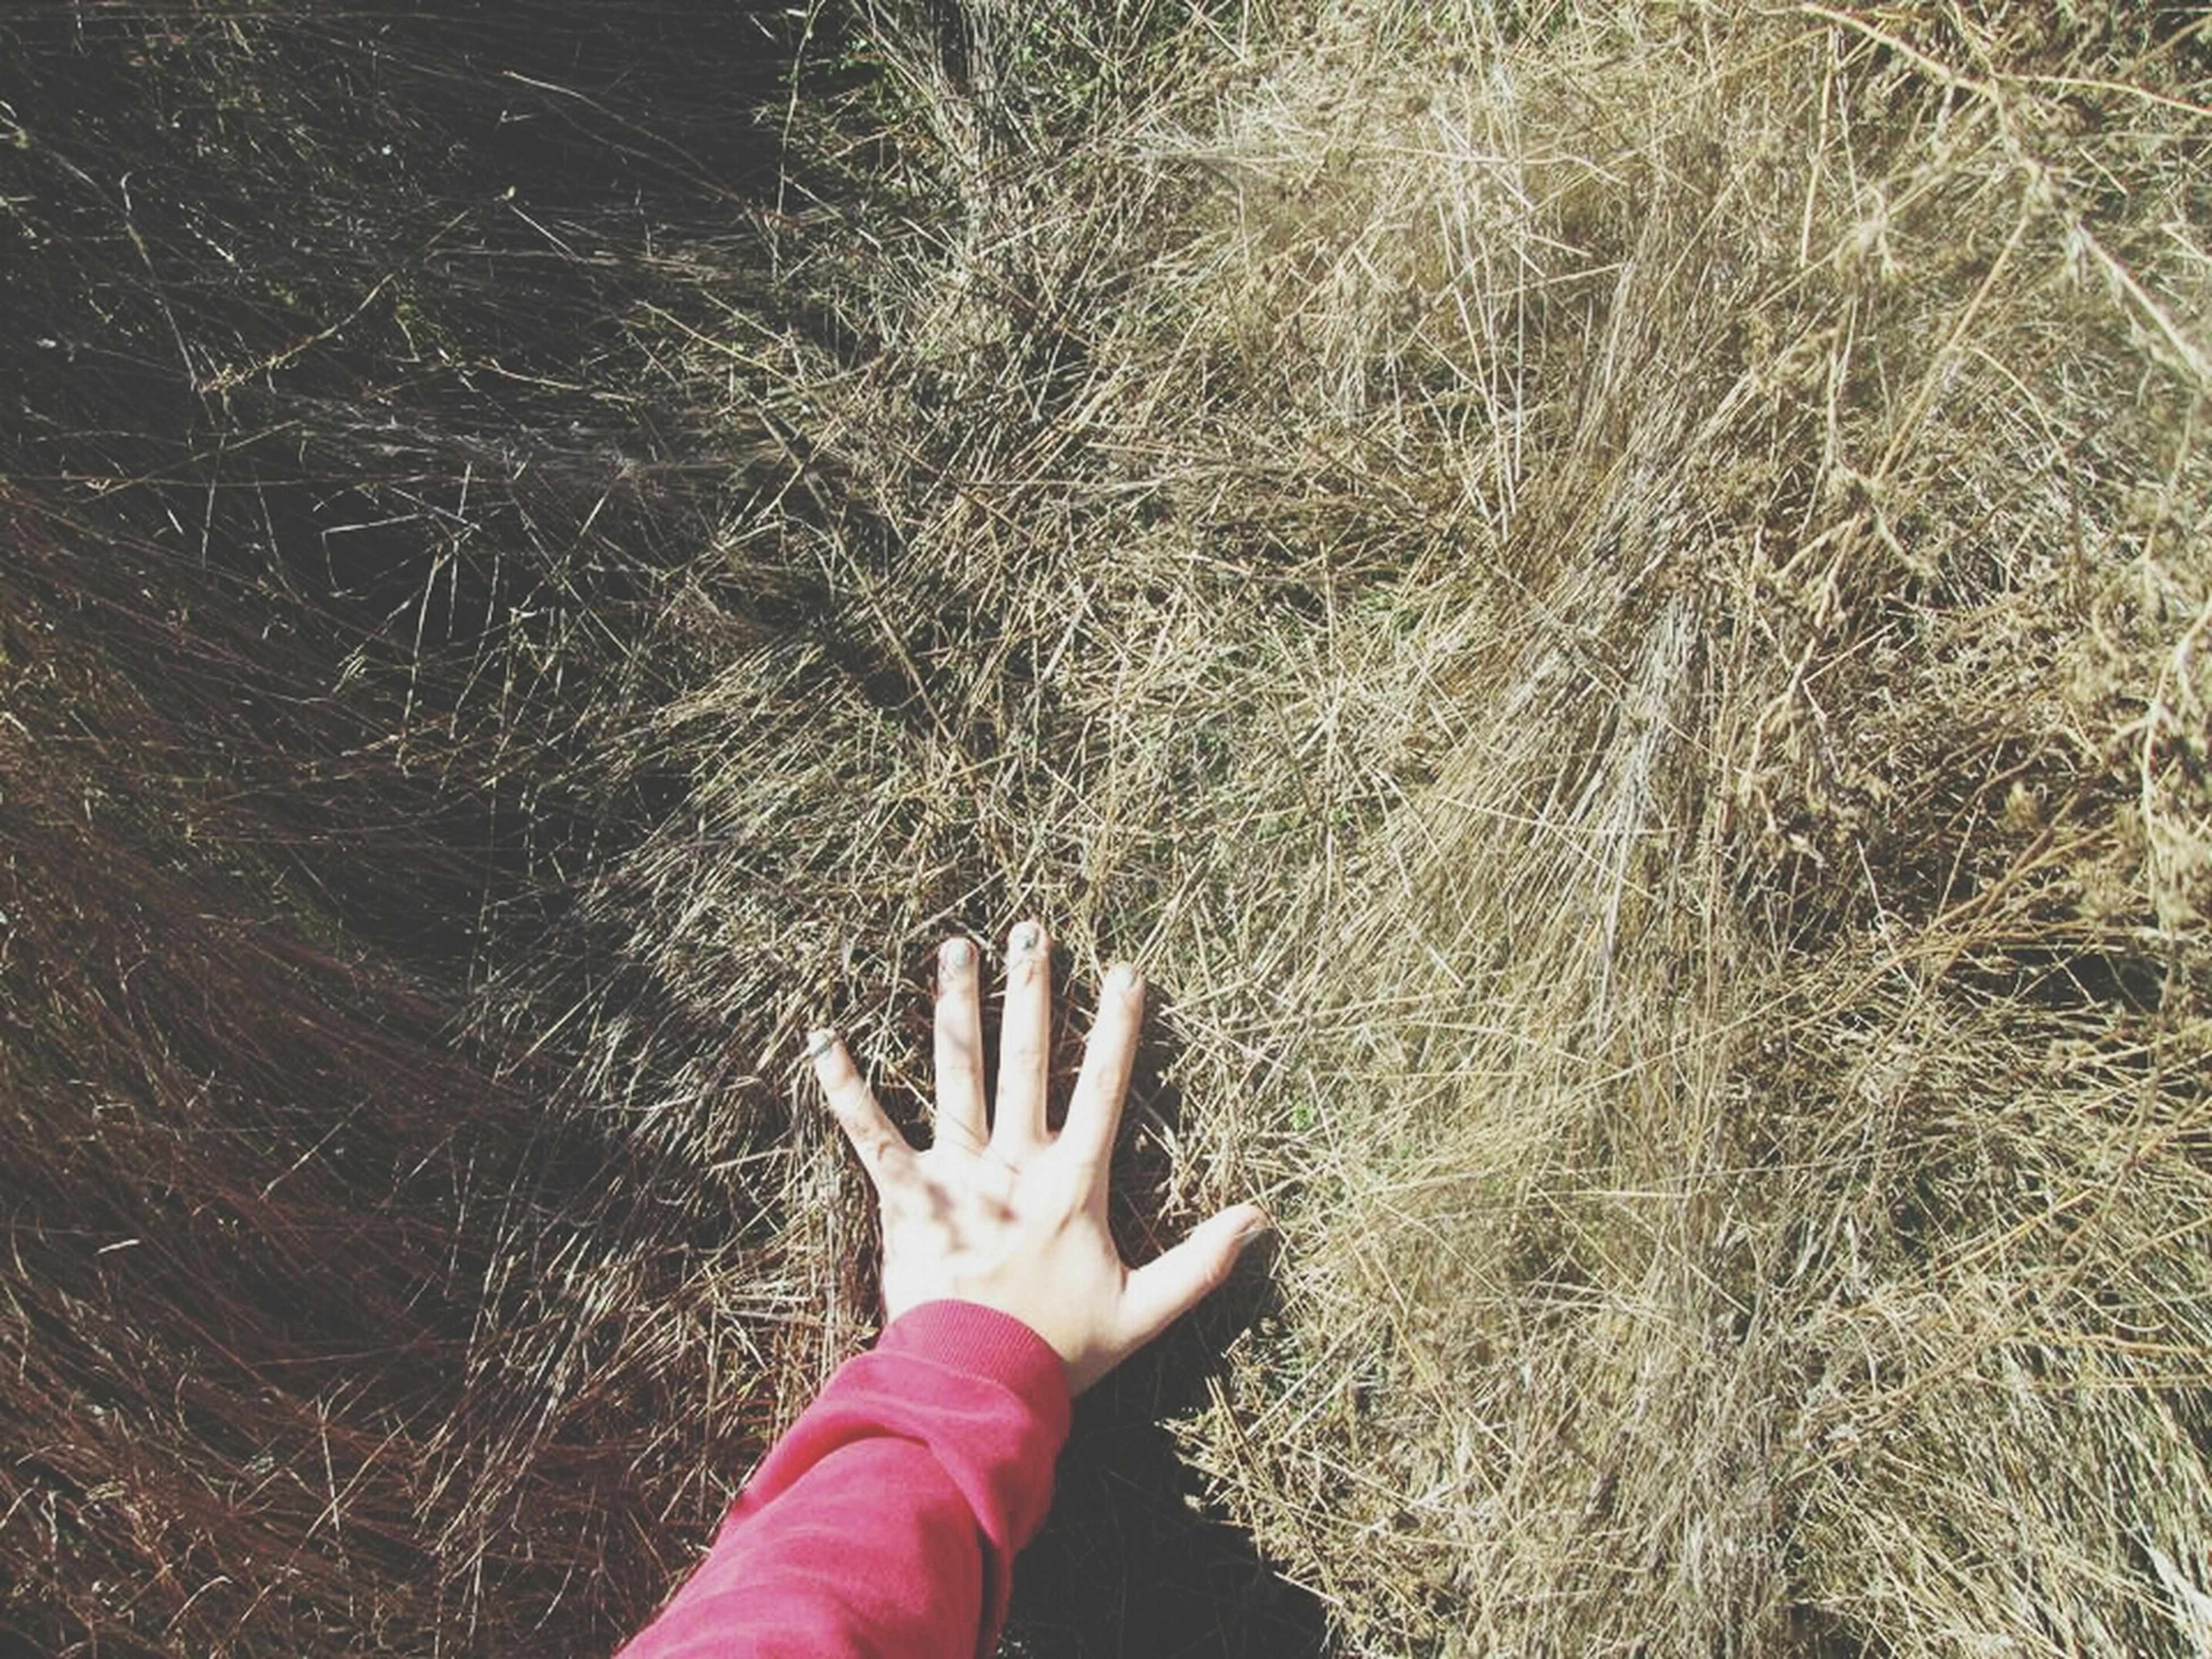 person, personal perspective, lifestyles, low section, leisure activity, part of, barefoot, unrecognizable person, grass, holding, human foot, human finger, field, cropped, outdoors